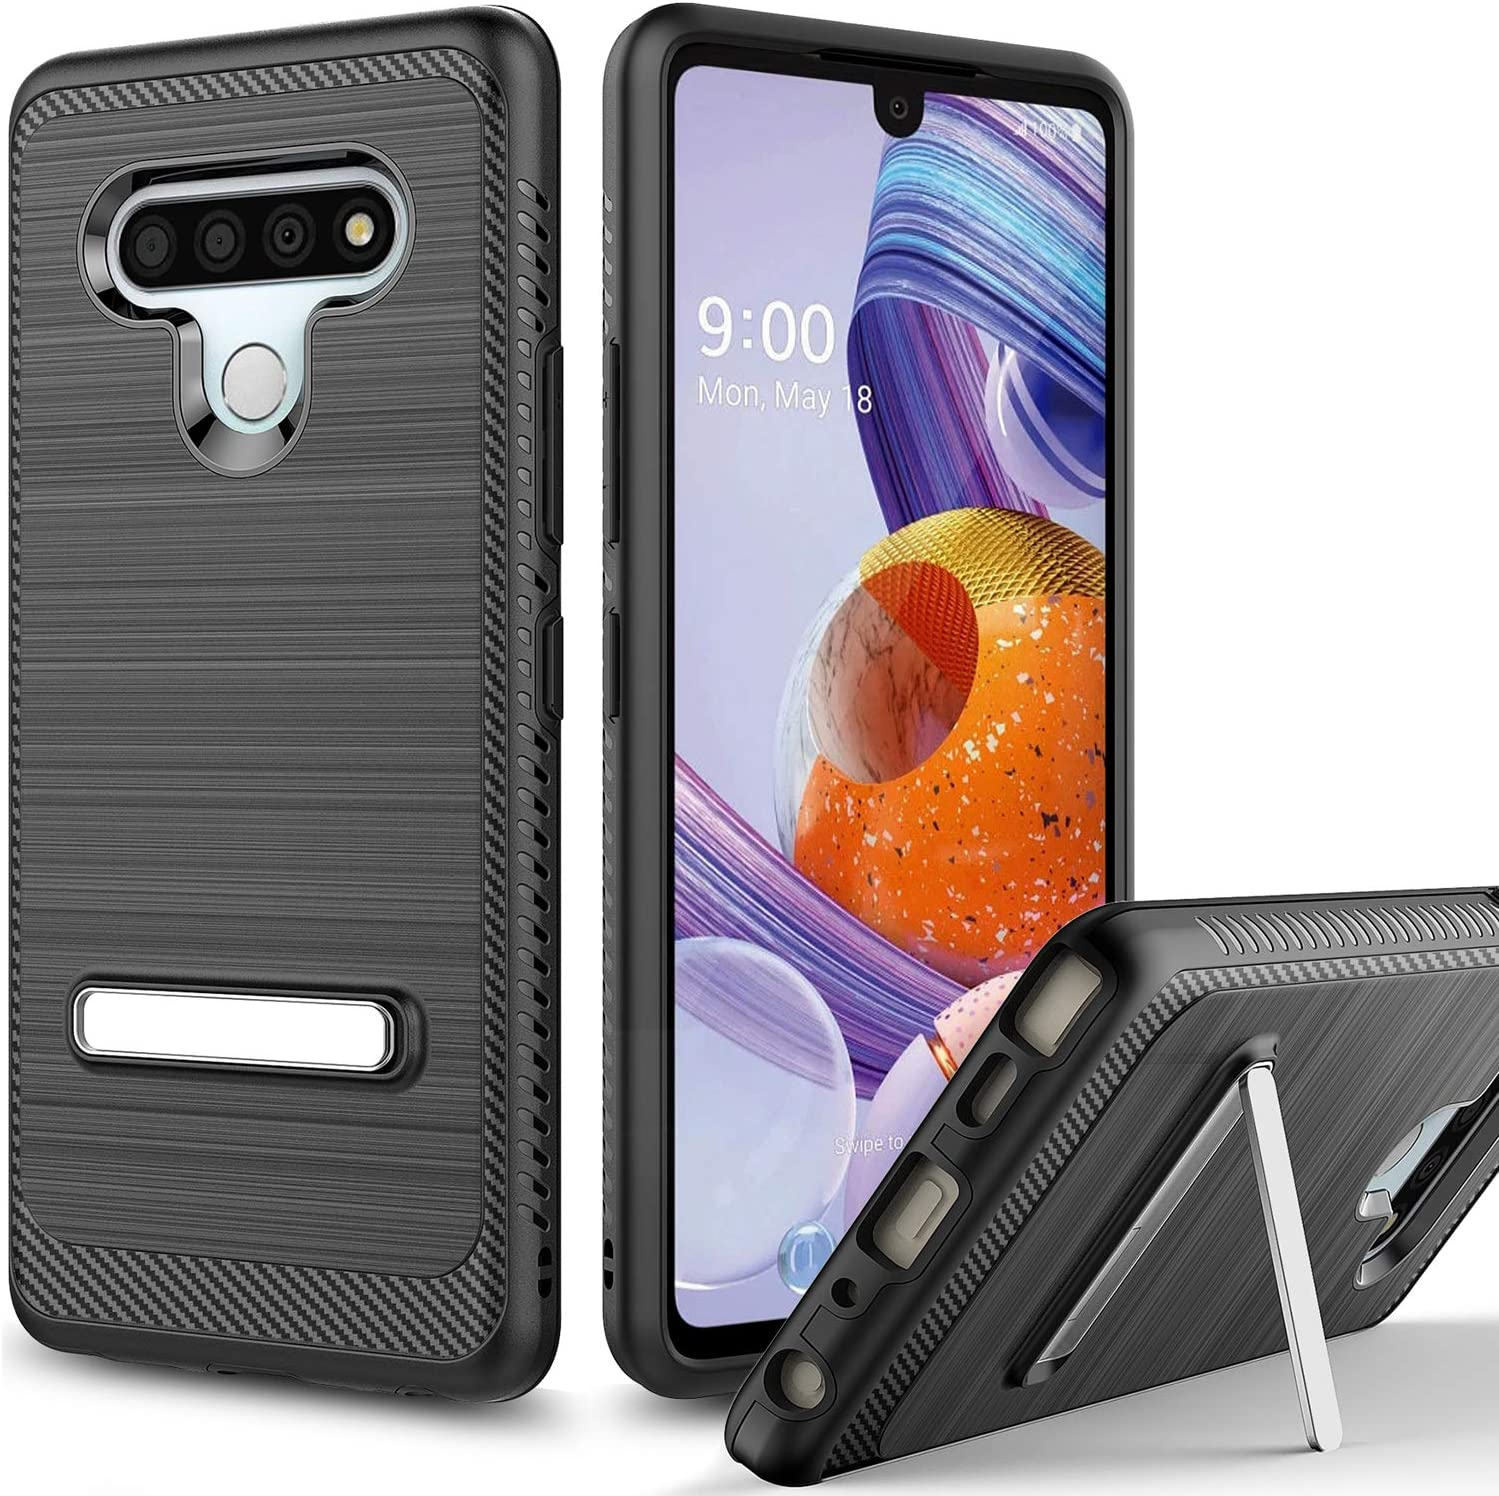 Androgate Designed for LG Stylo 6 Case with Kickstand, Hybrid Shockproof Raised Lip Protective Cover Bumper Case Compatible with LG Stylo 6, Black